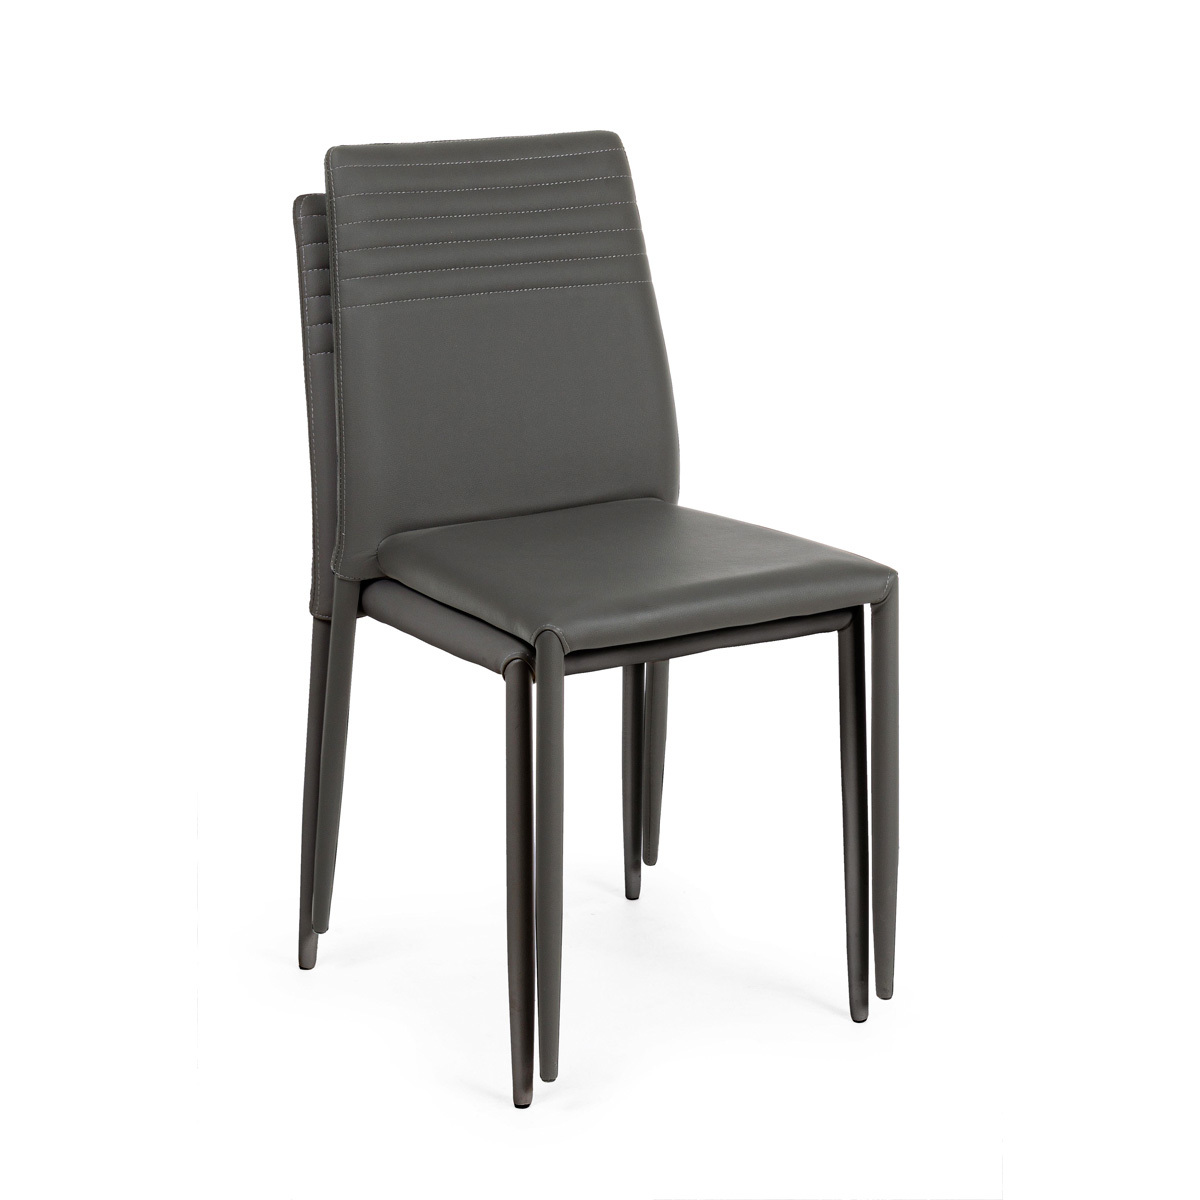 Photos 4: Bizzotto Chair in metal and eco-leather - anthracite 0731797